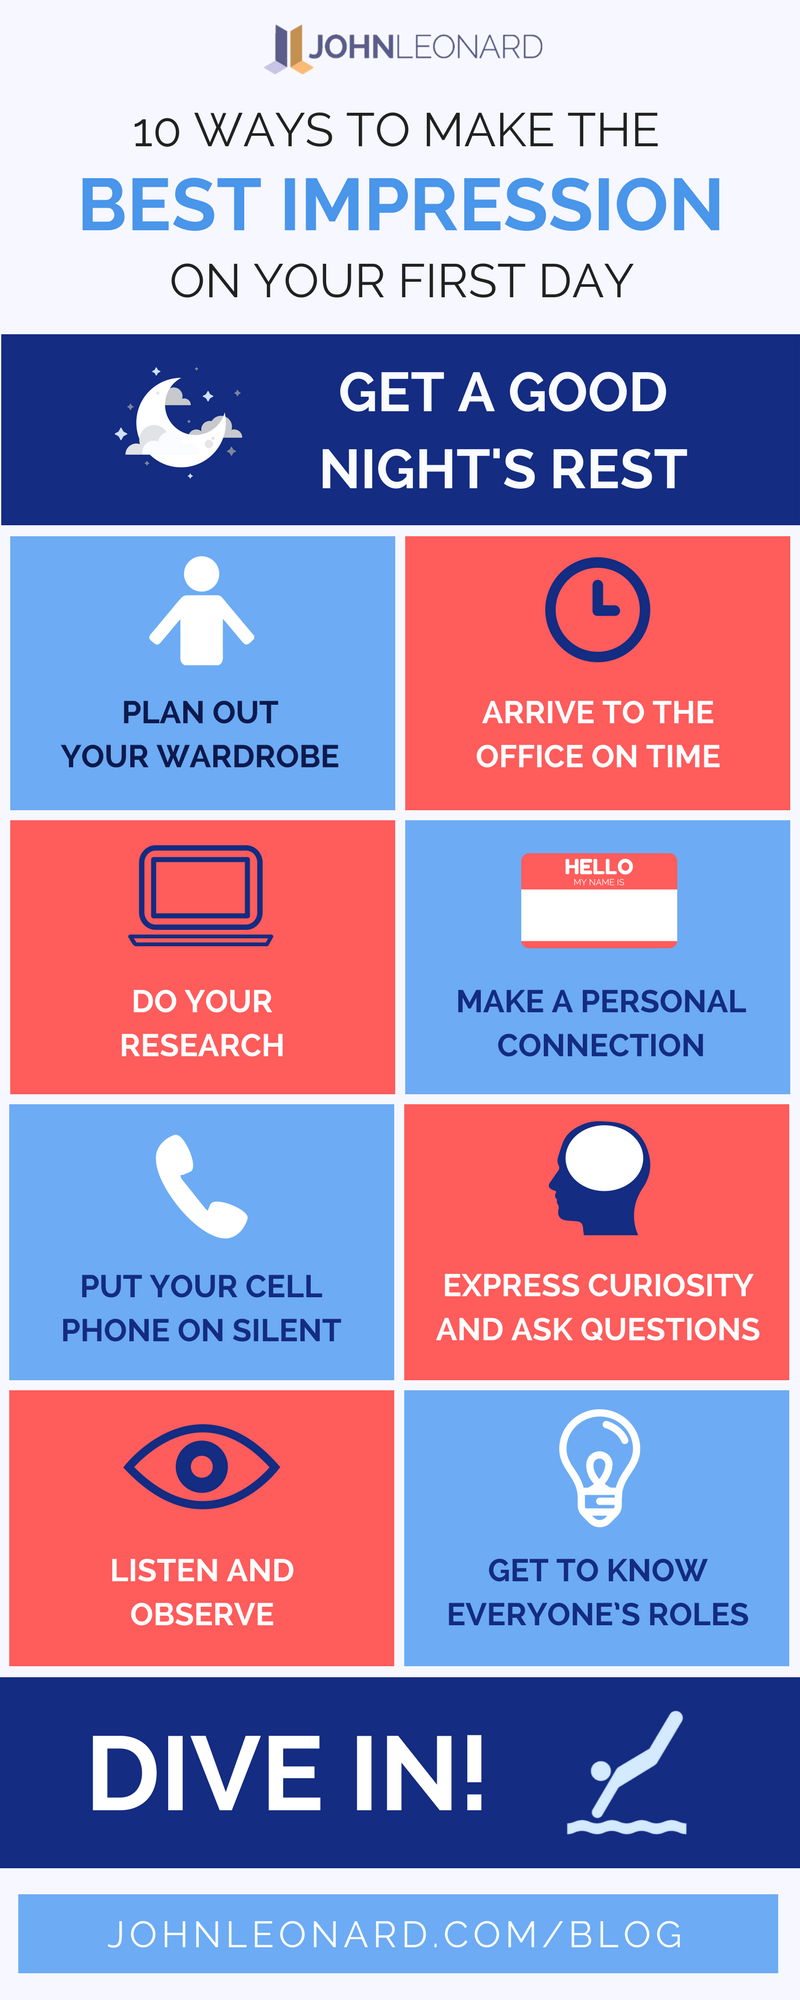 10 Ways to Make the Best Impression on Your First Day (Infographic).png